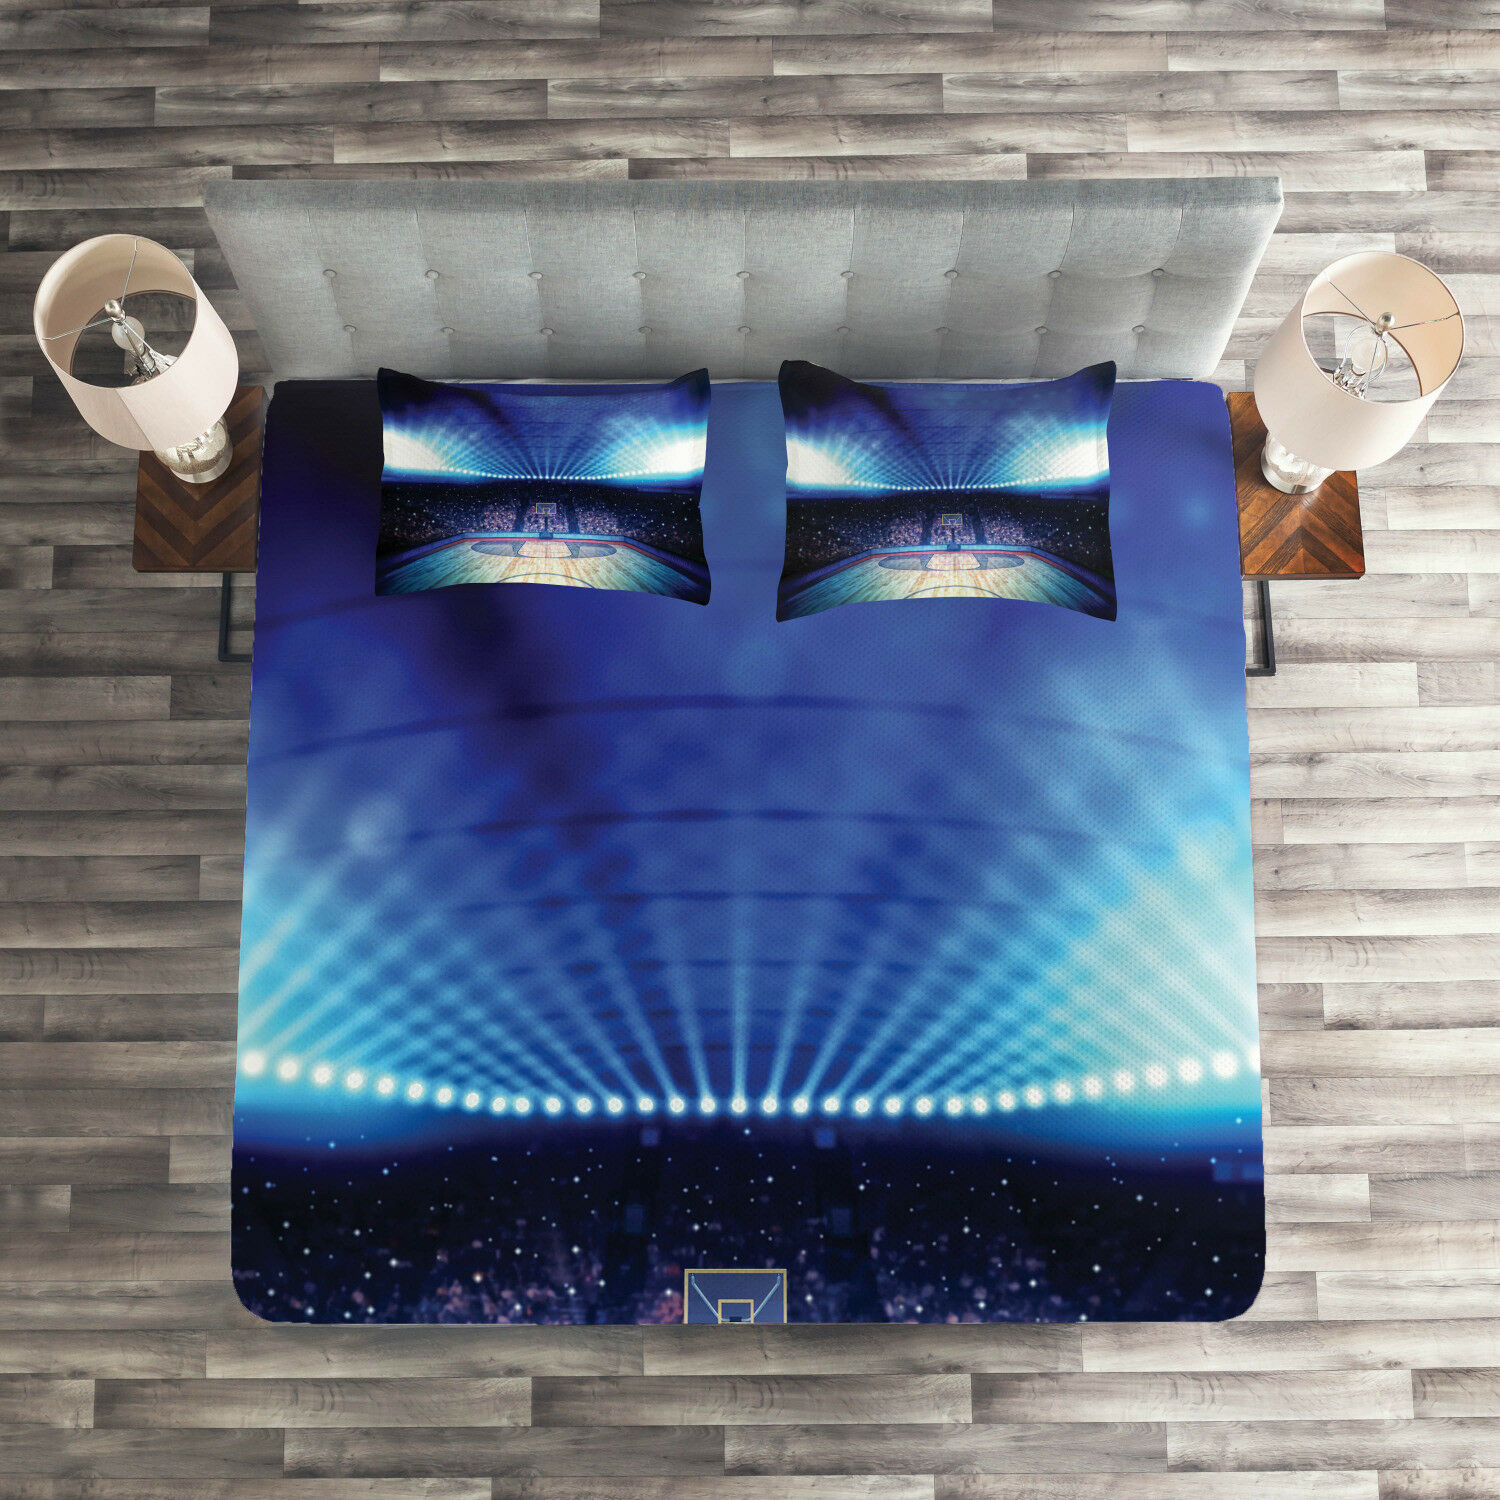 Sports Quilted Coverlet & Pillow Shams Set, Basketball Arena Game Print